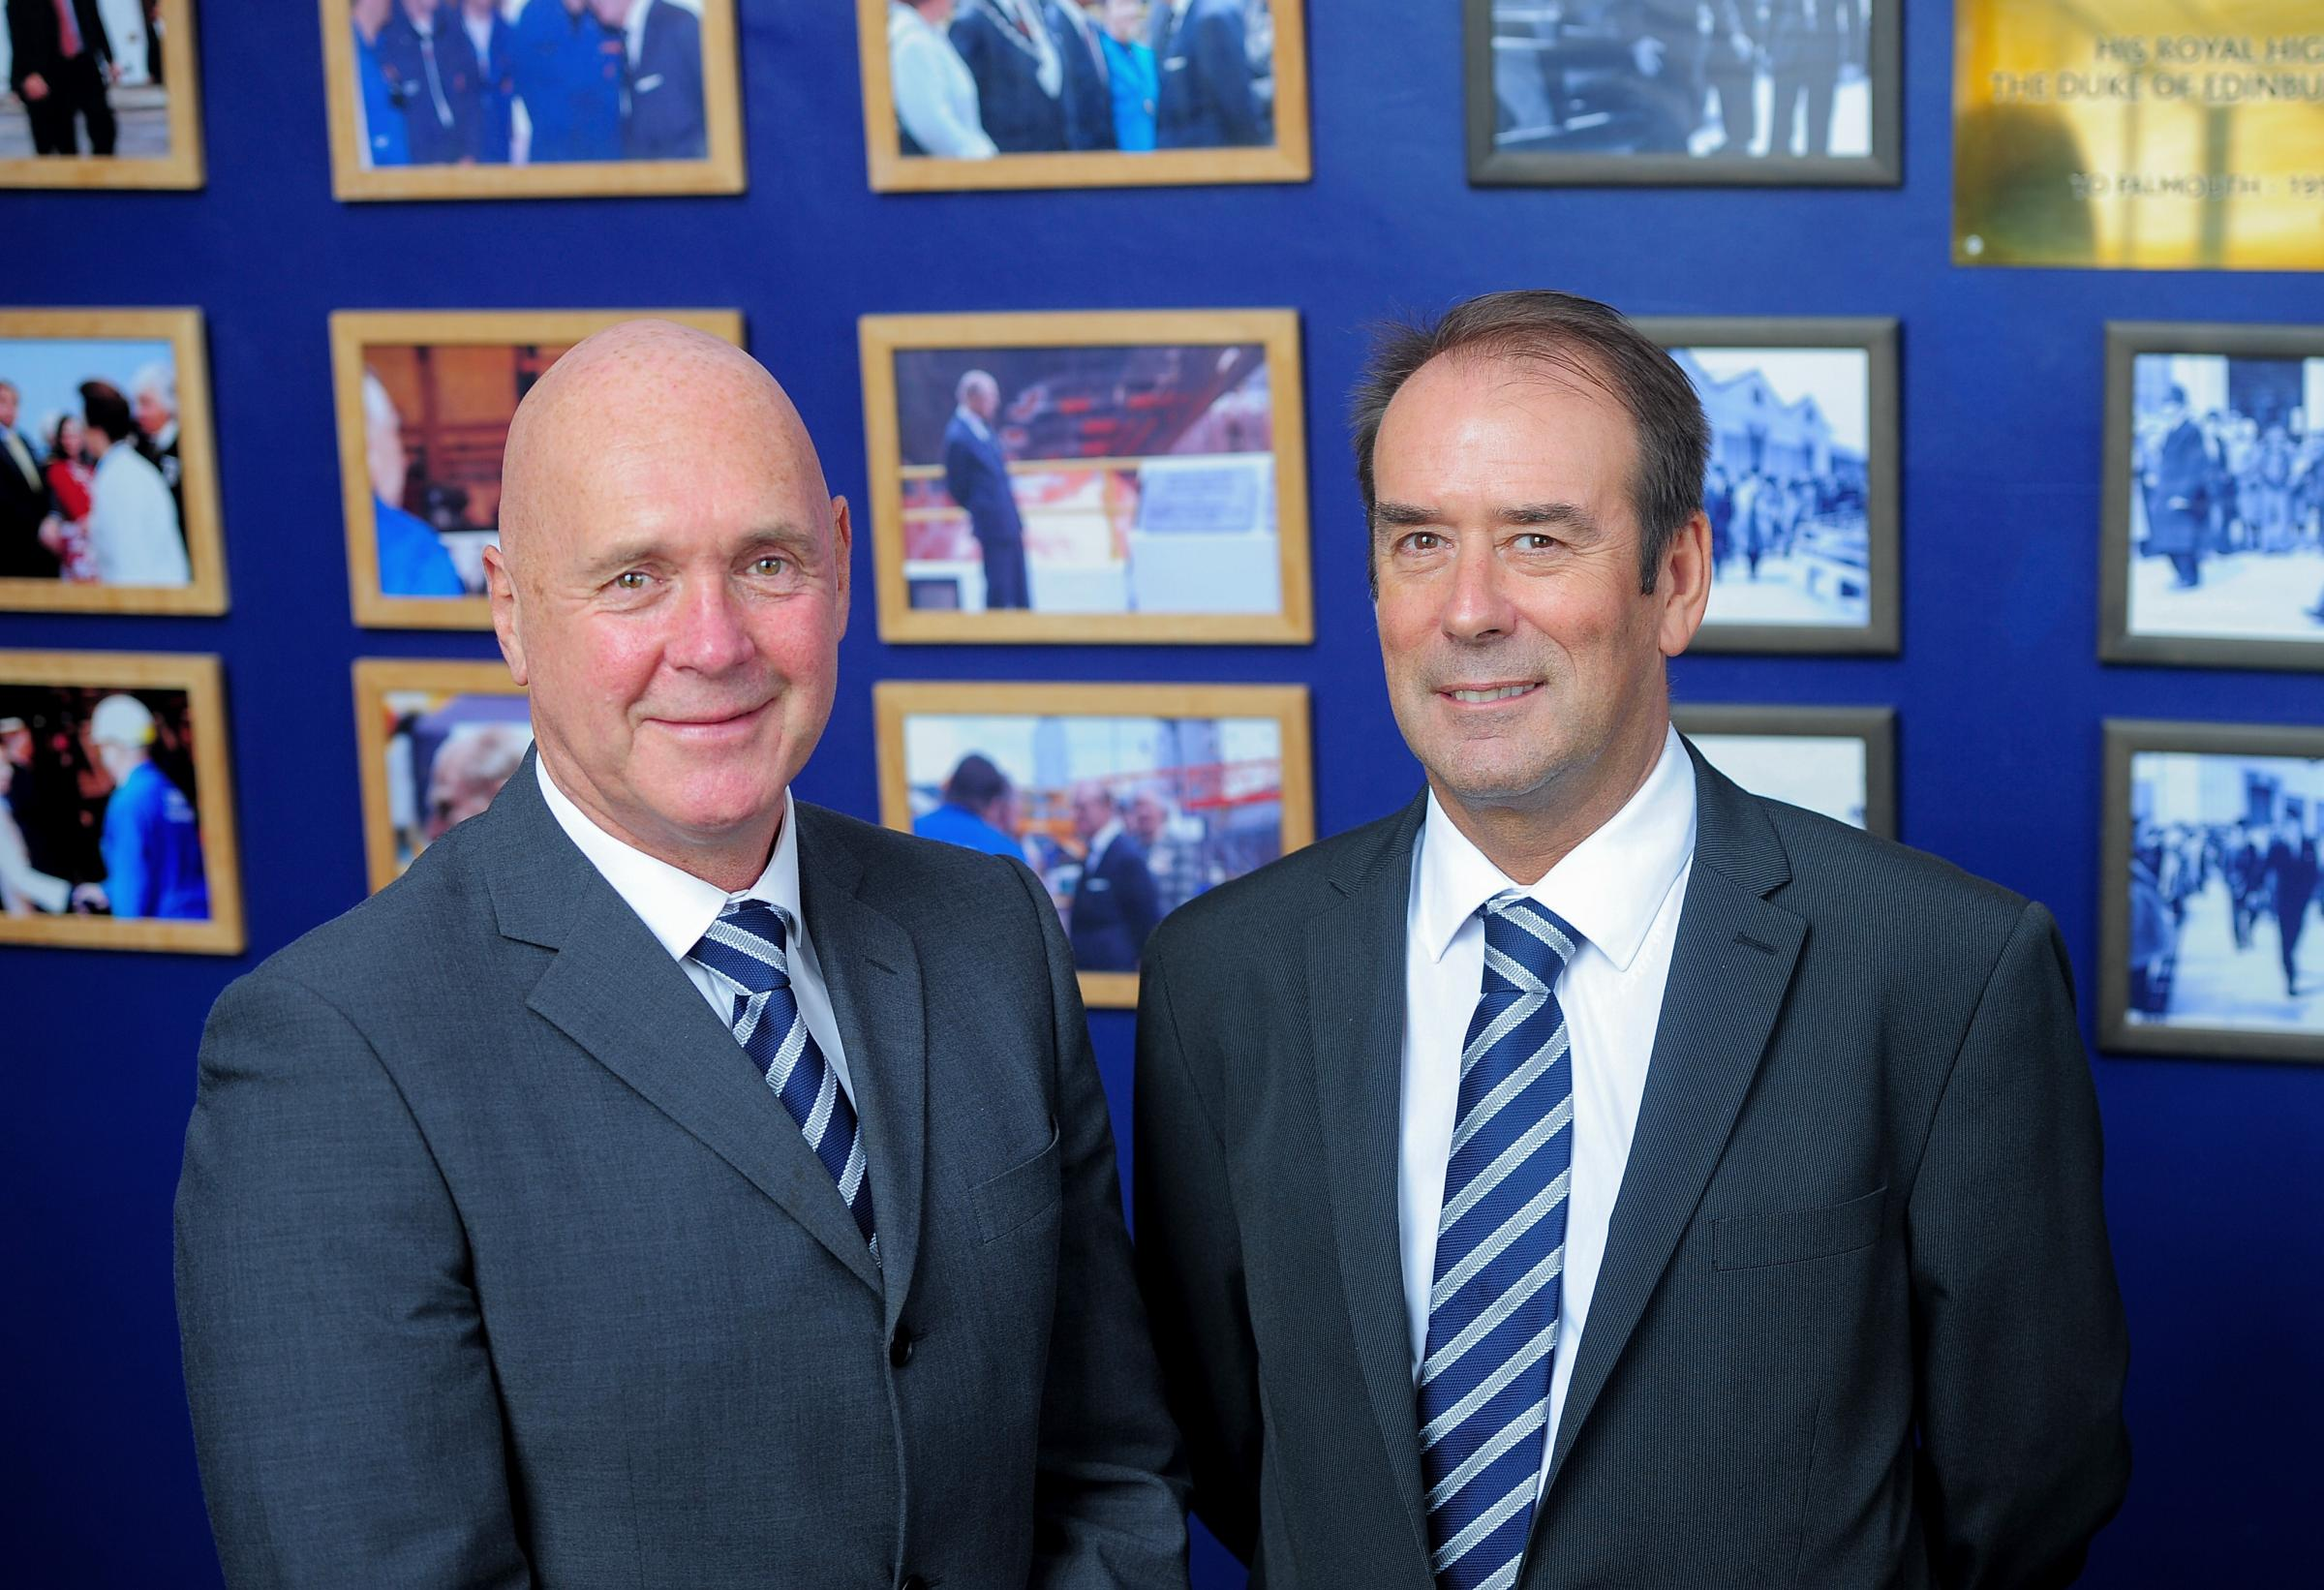 Gerald Pitts A&P Group Defence Division MD and Steve Jones, MD Operations and site director A&P Falmouth